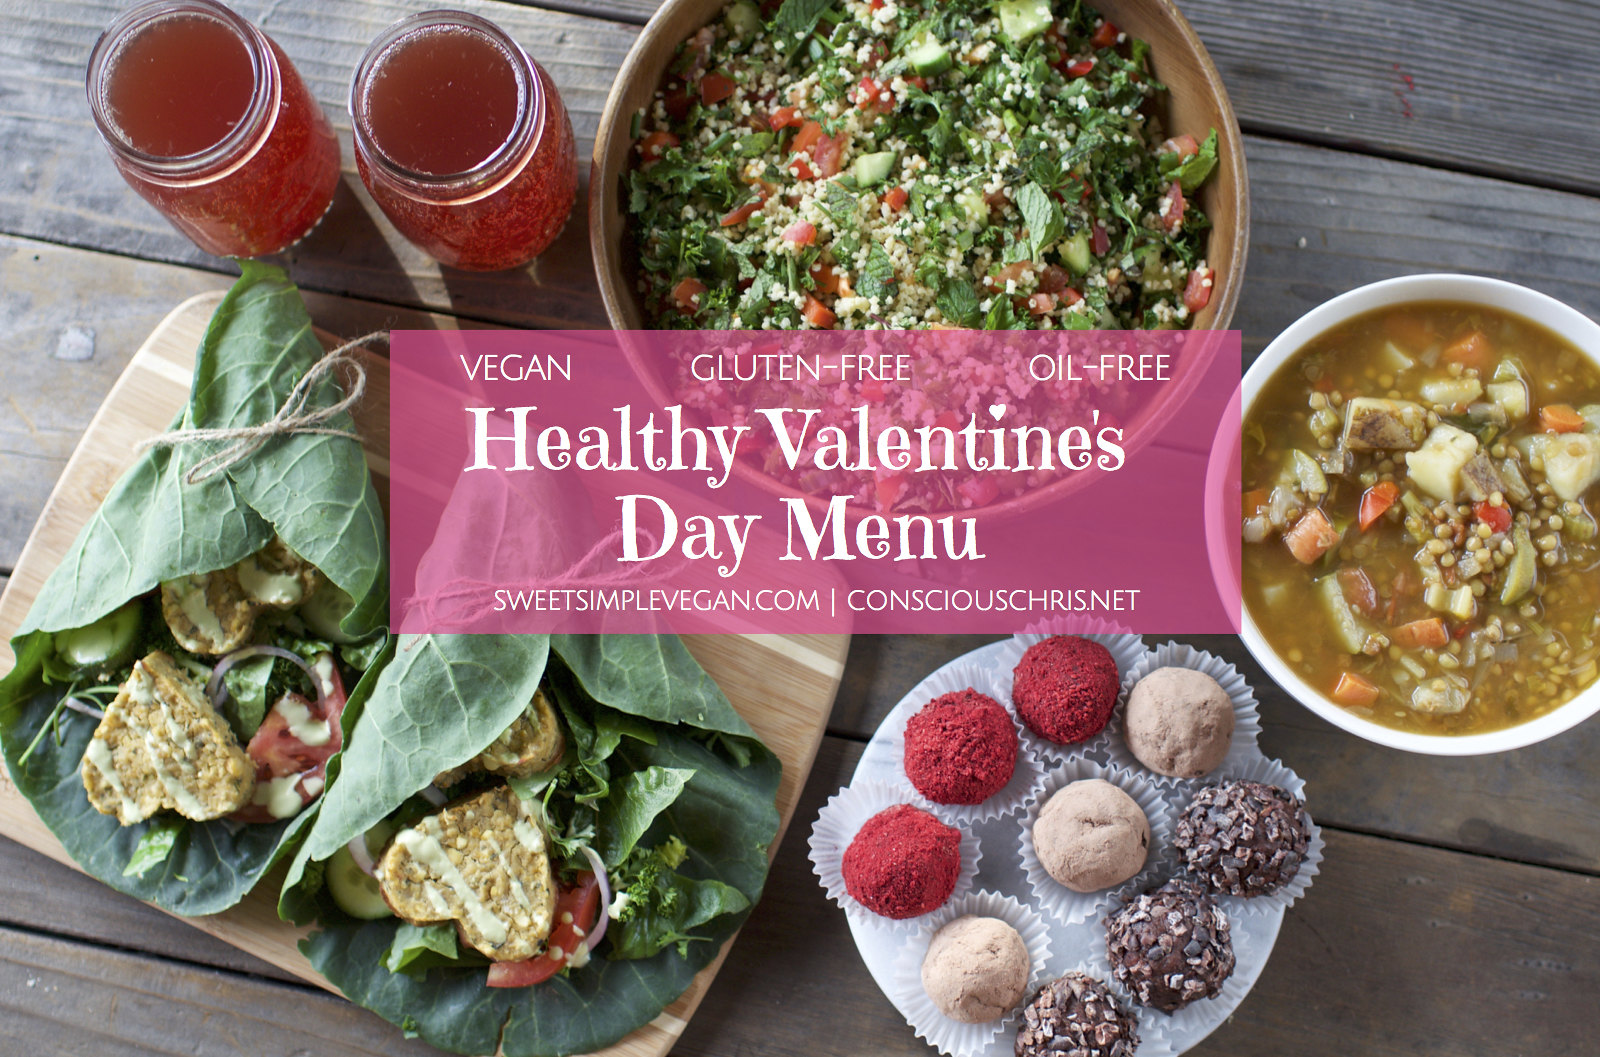 Vegan Valentine's Day Menu {oil-free} sweetsimplevegan.com